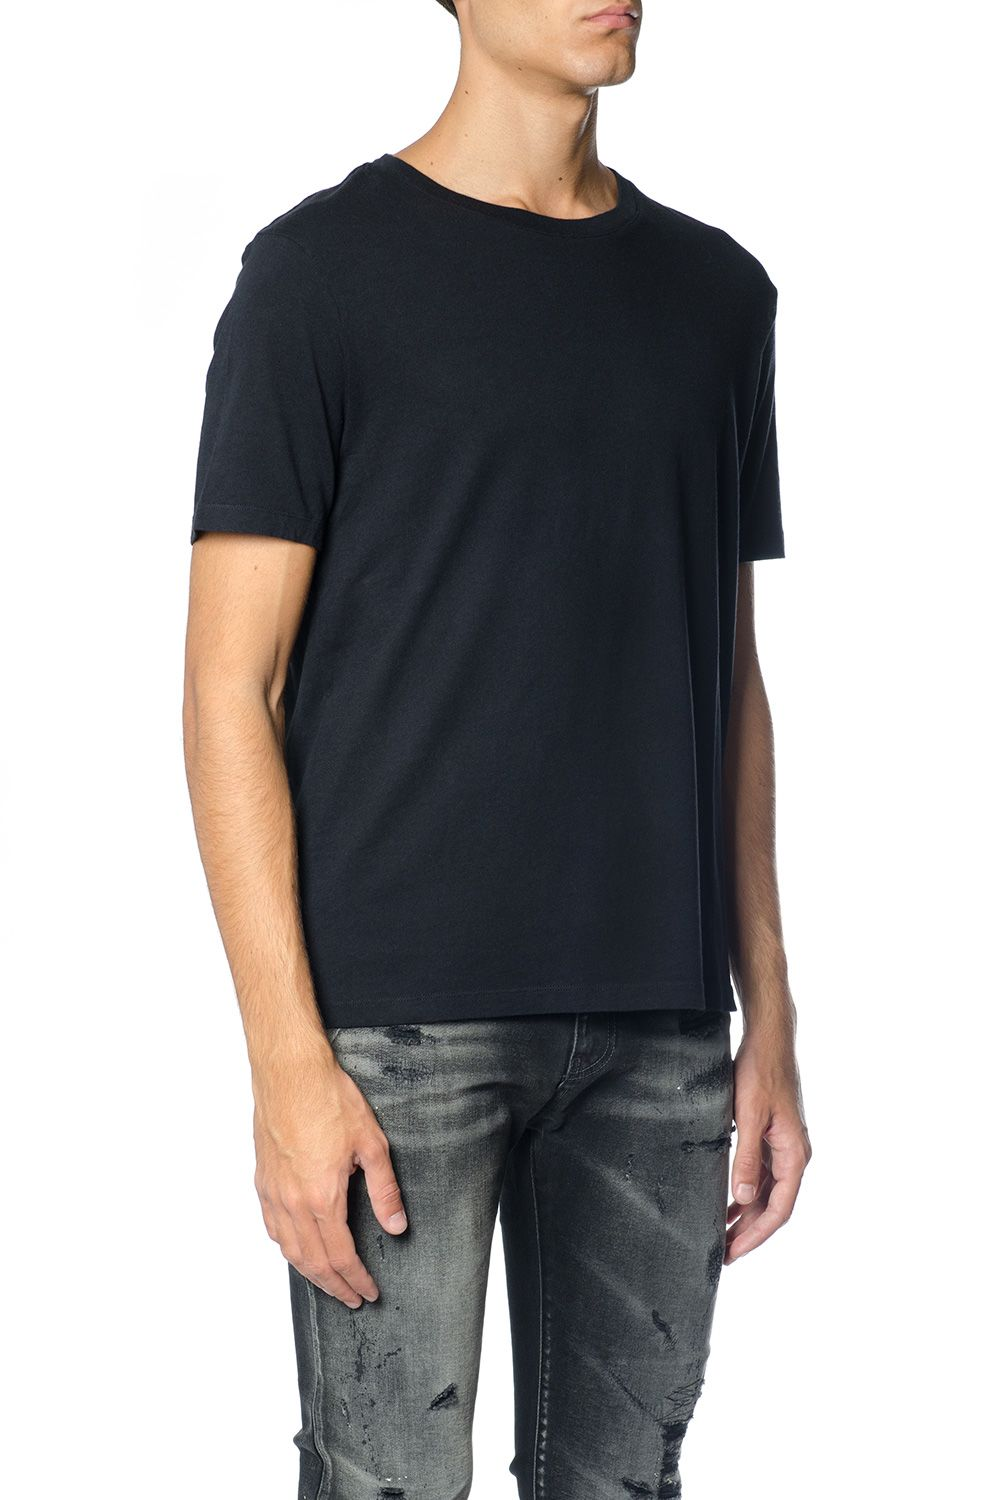 Faith Connexion Black Cotton Scoop Neck T-shirt